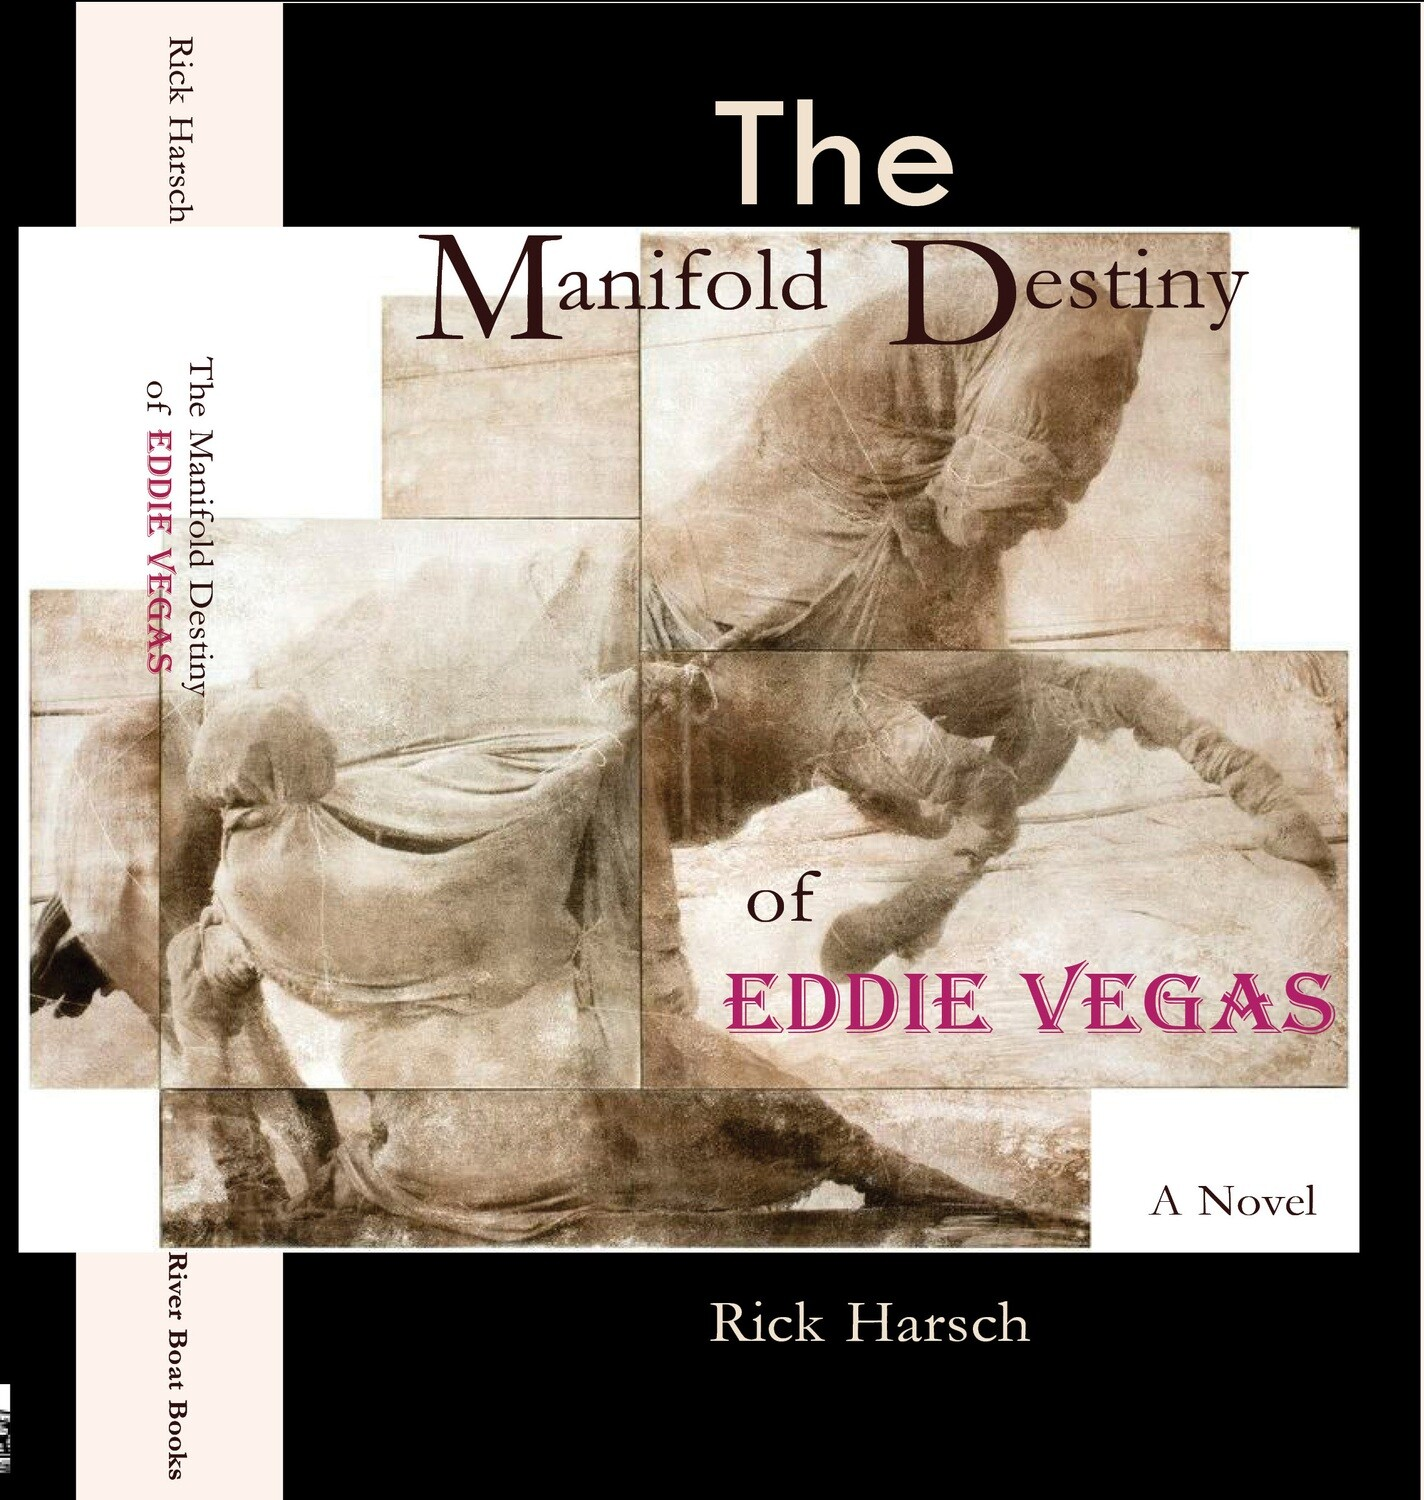 The Manifold Destiny of Eddie Vegas